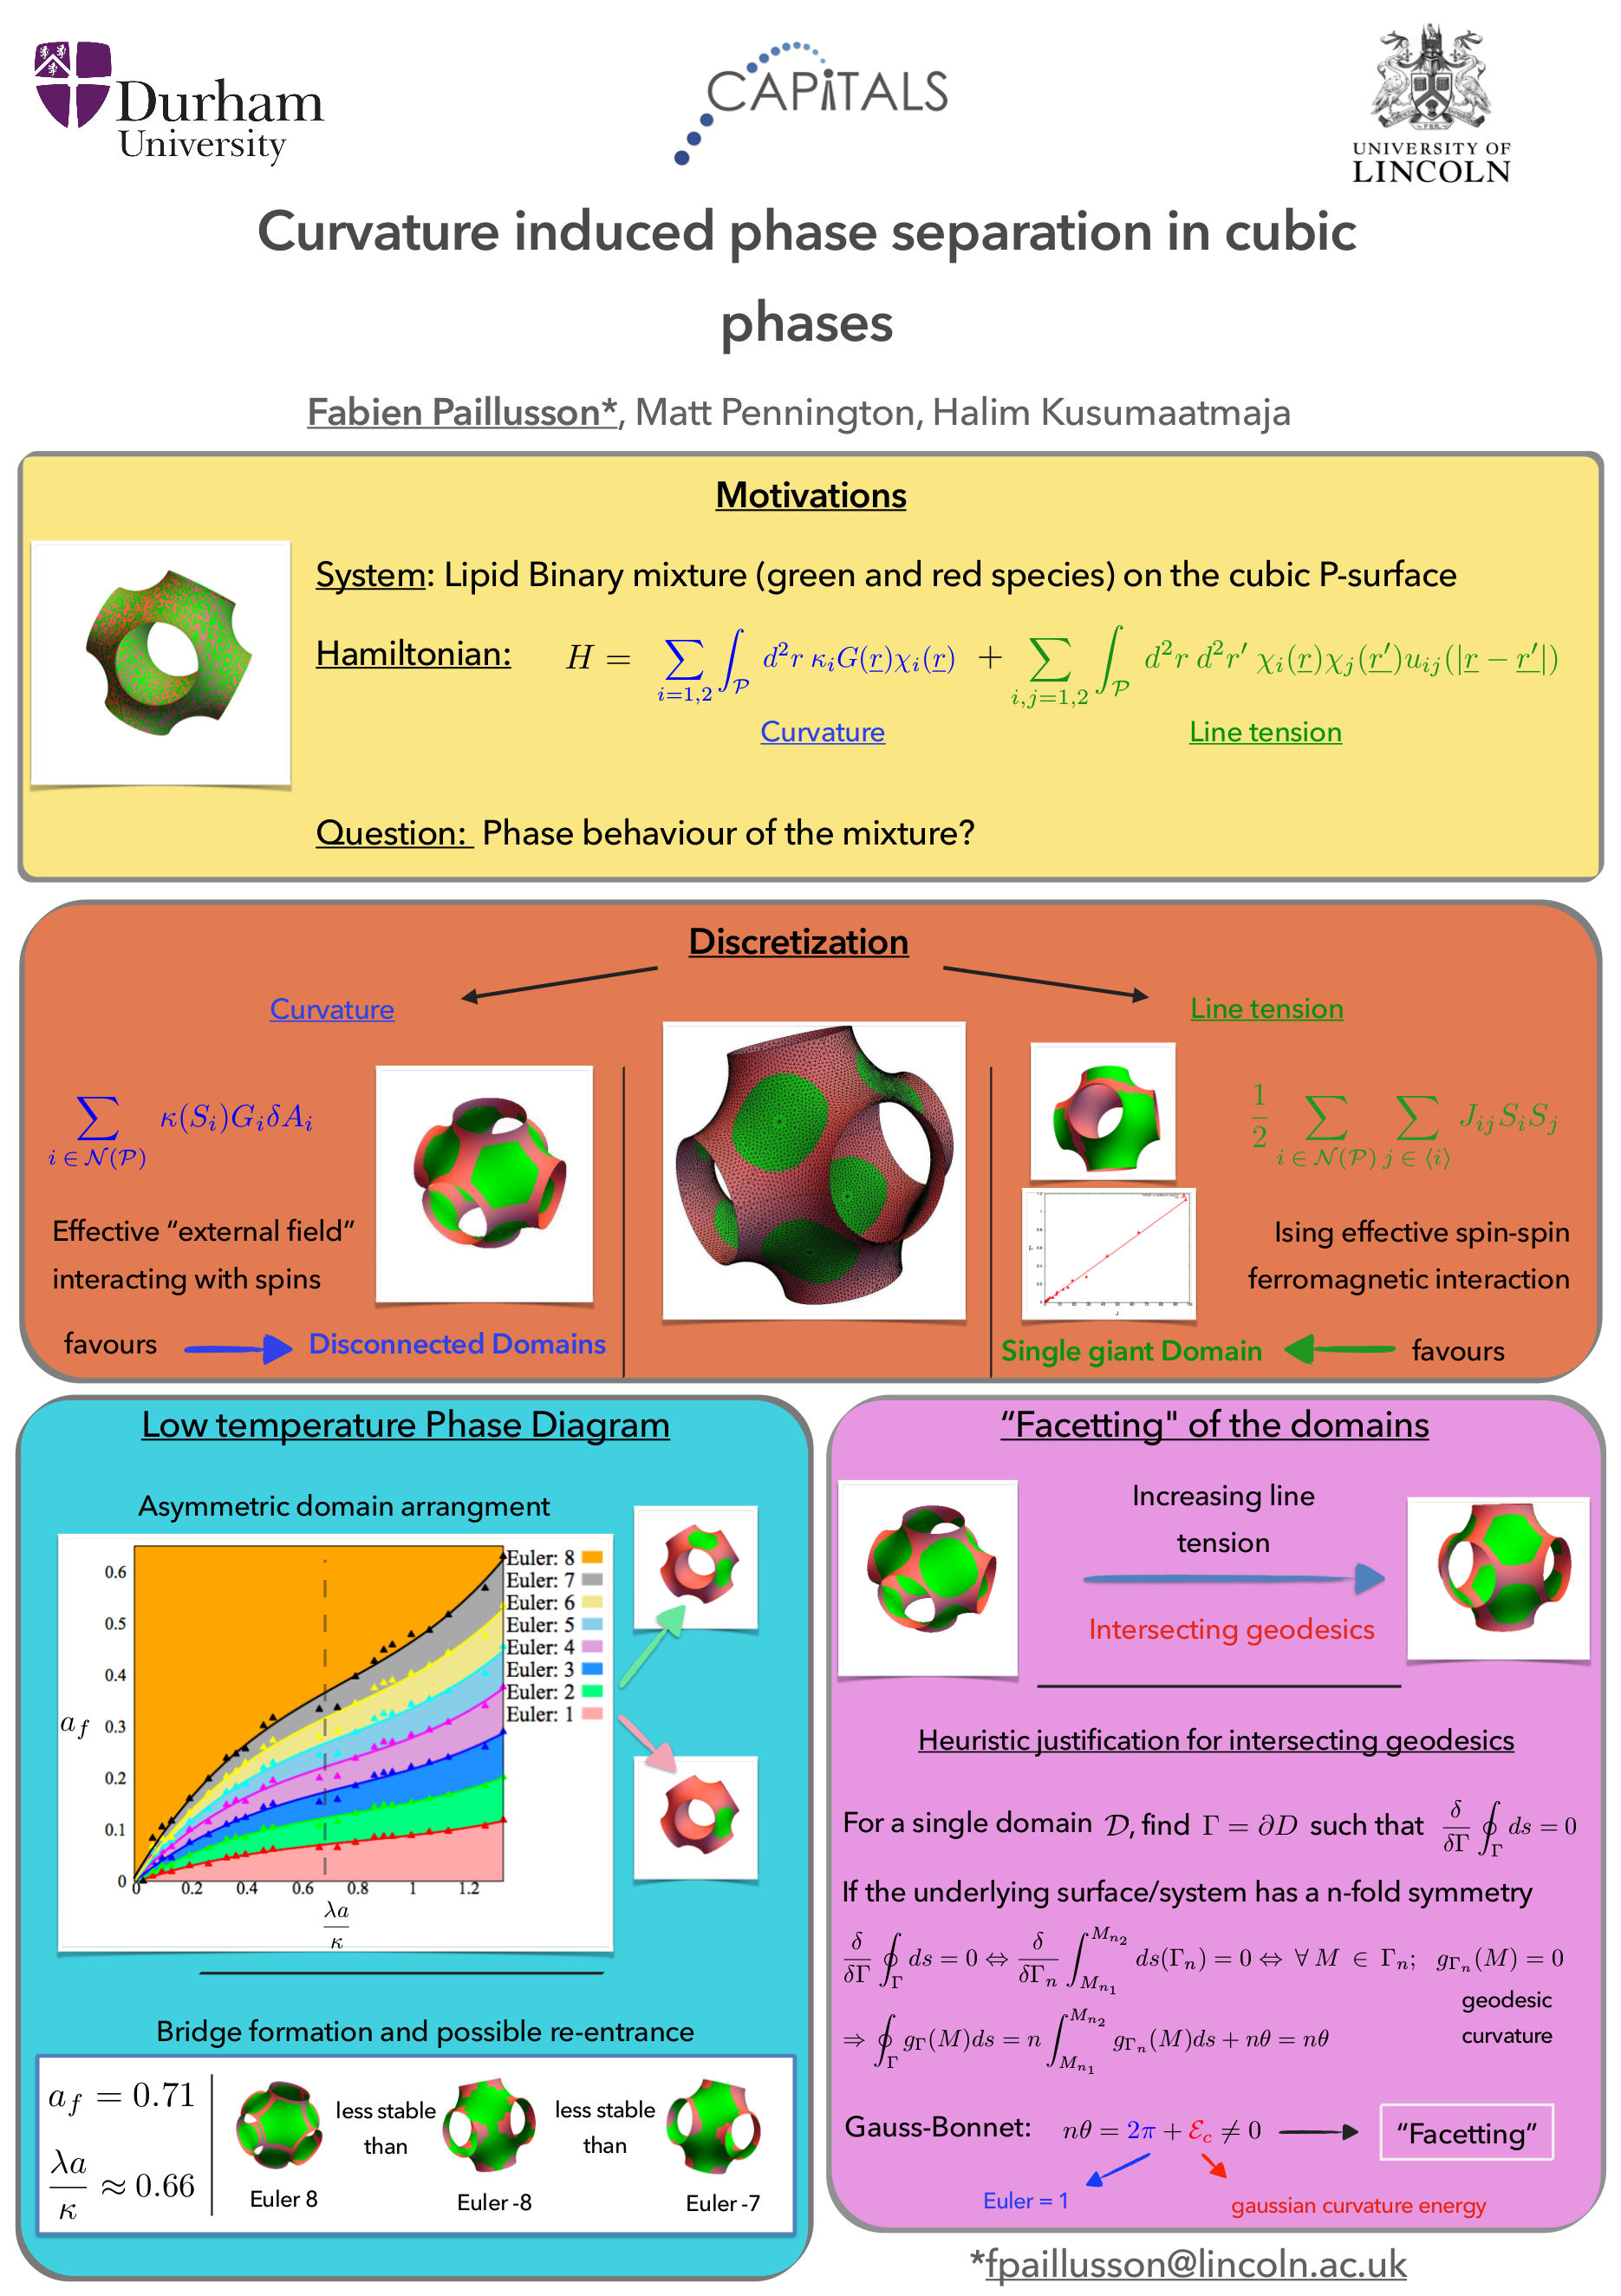 presentation in physics Physicists find symmetry elemental in describing the physical world fundamental symmetry principles dictate the basic laws of physics, control the stucture of matter, and define the fundamental forces in nature.